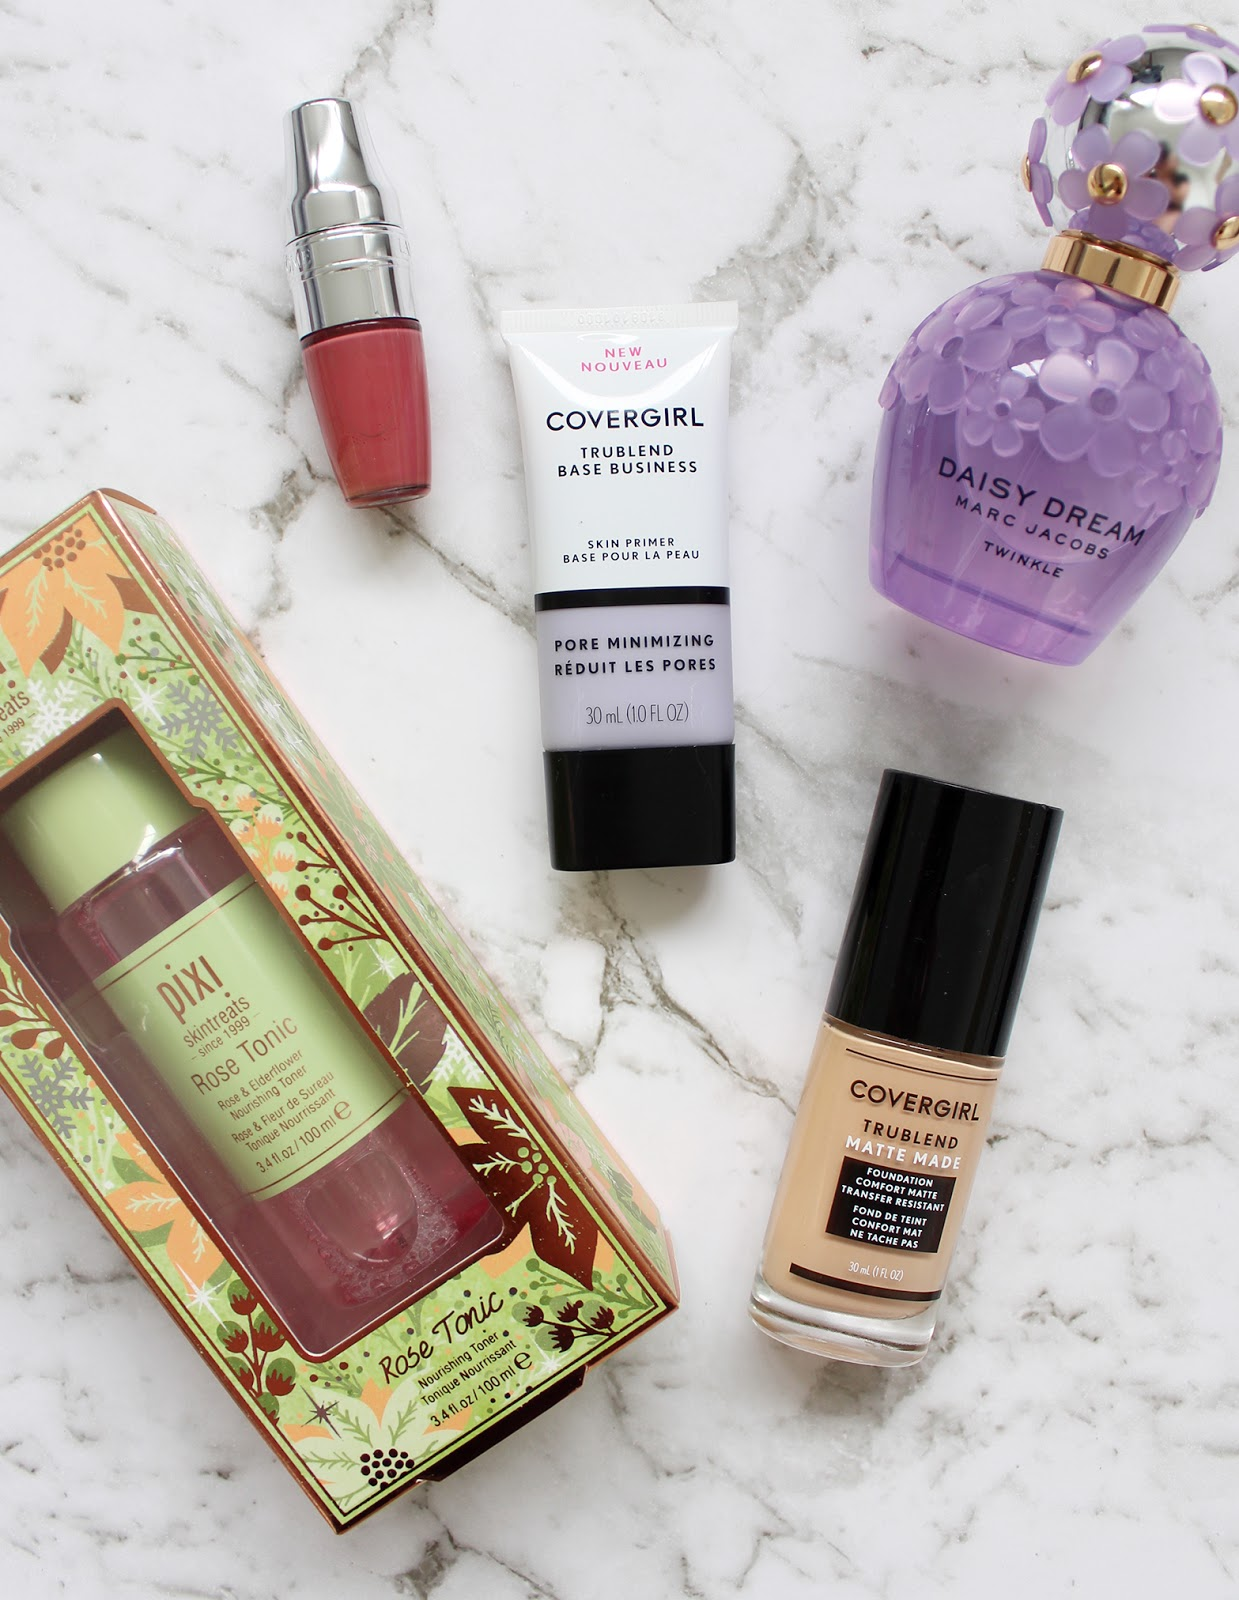 NEW IN BEAUTY HAUL | Covergirl, Marc Jacobs, Pixi + Lancome - Cassandra Myee